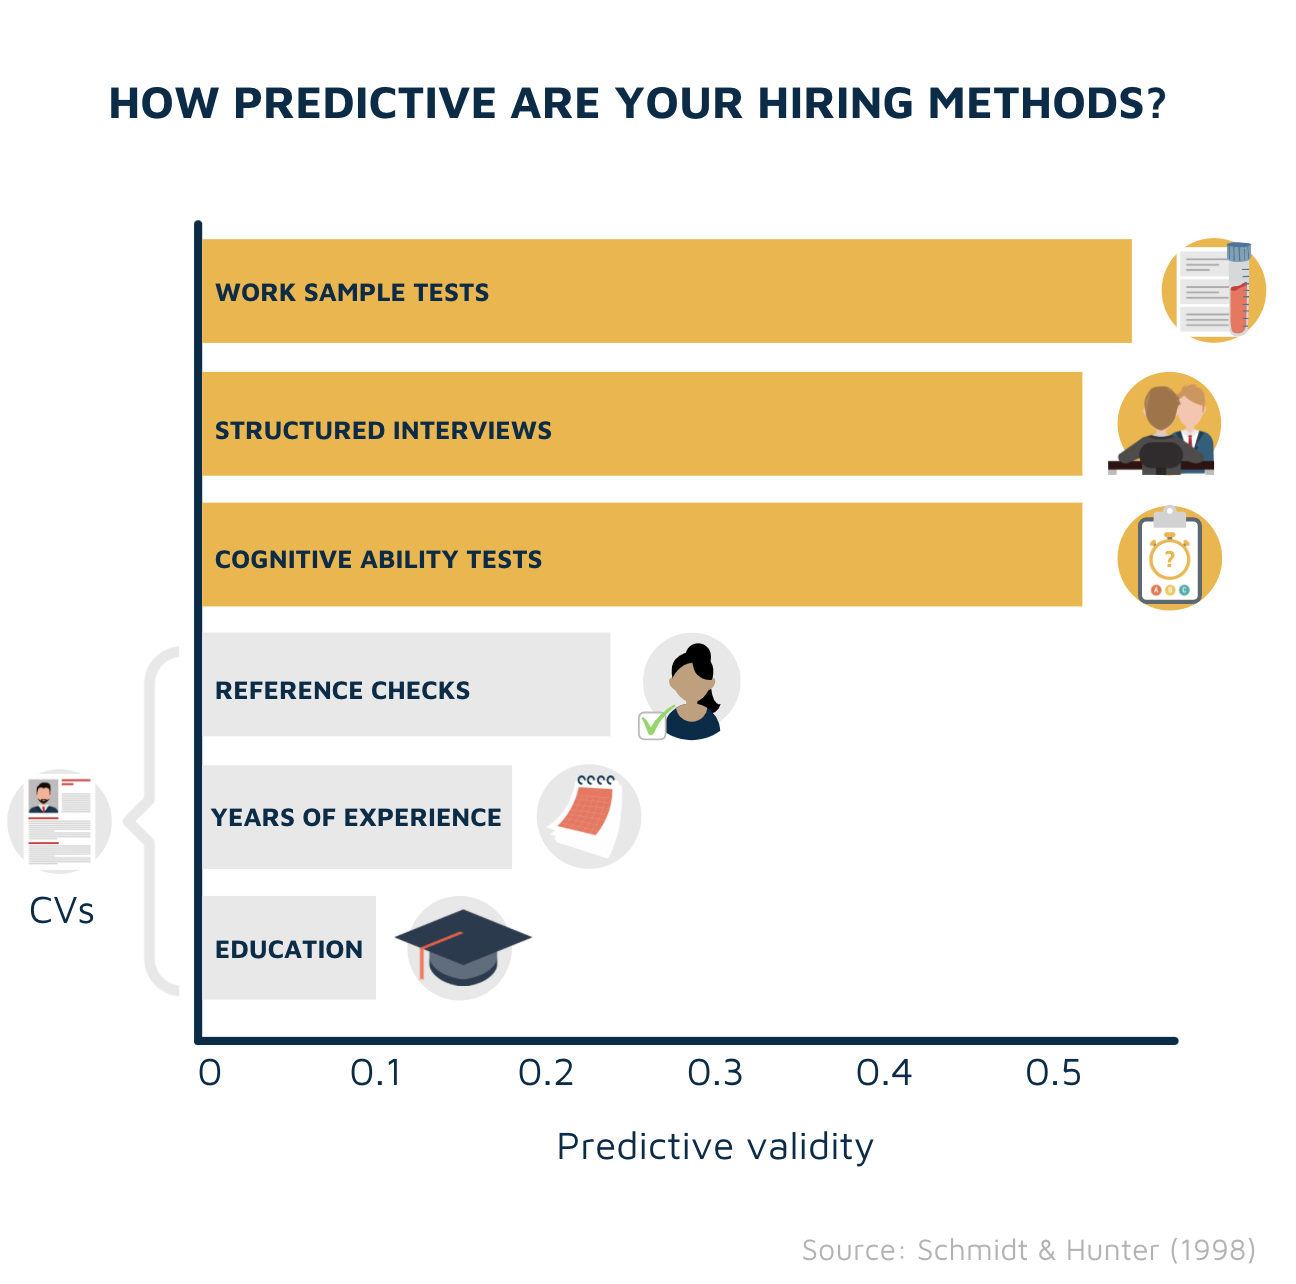 Predictive validity of hiring methods study